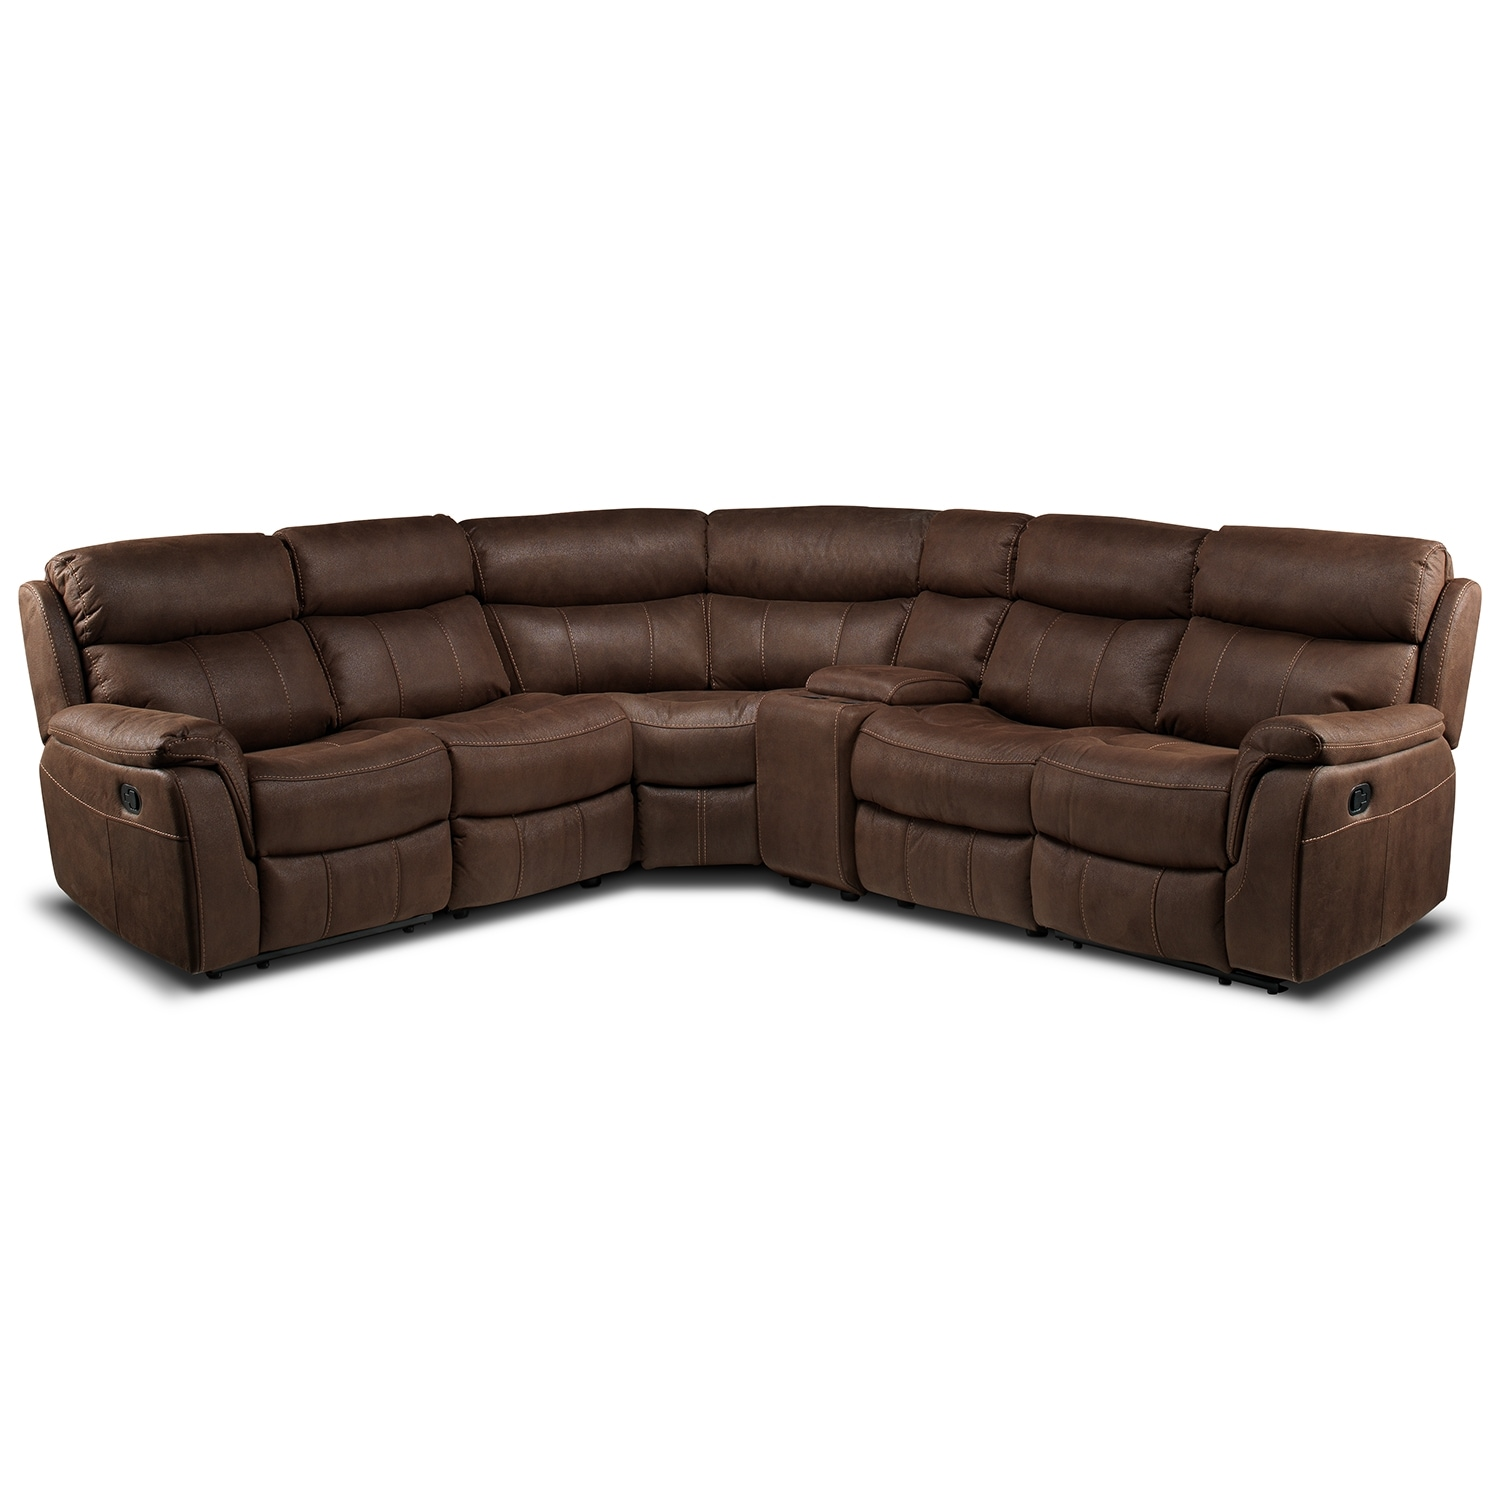 Vaquero 6 piece reclining sectional saddle brown leon 39 s for Living room furniture pieces